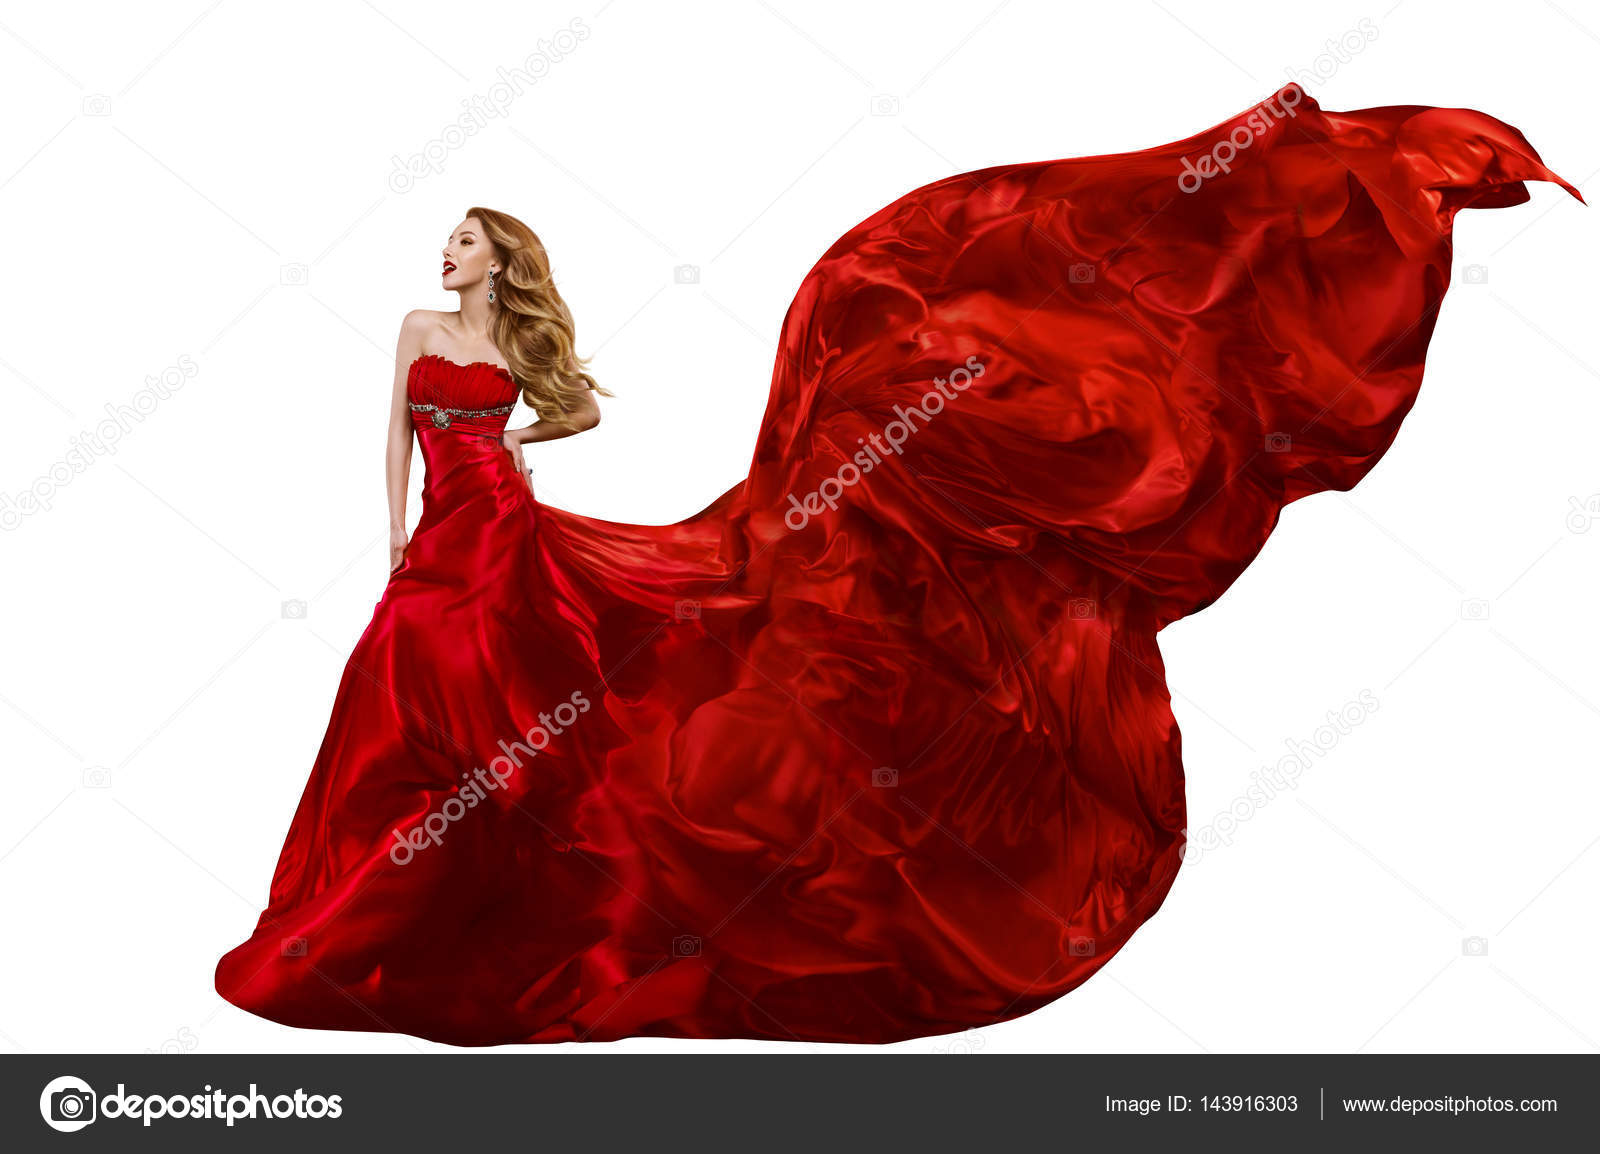 Woman Fashion Red Dress Gown Waving On Wind Flying Silk Fabric Stock Photo